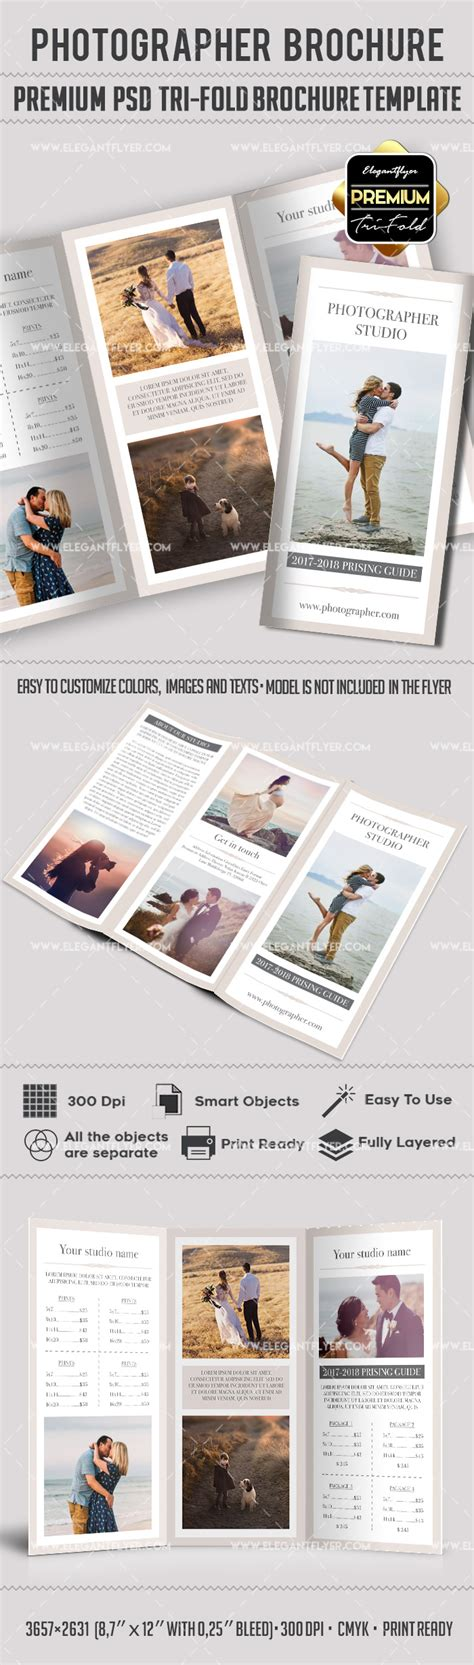 photography brochure templates tri fold brochure photography template free by elegantflyer